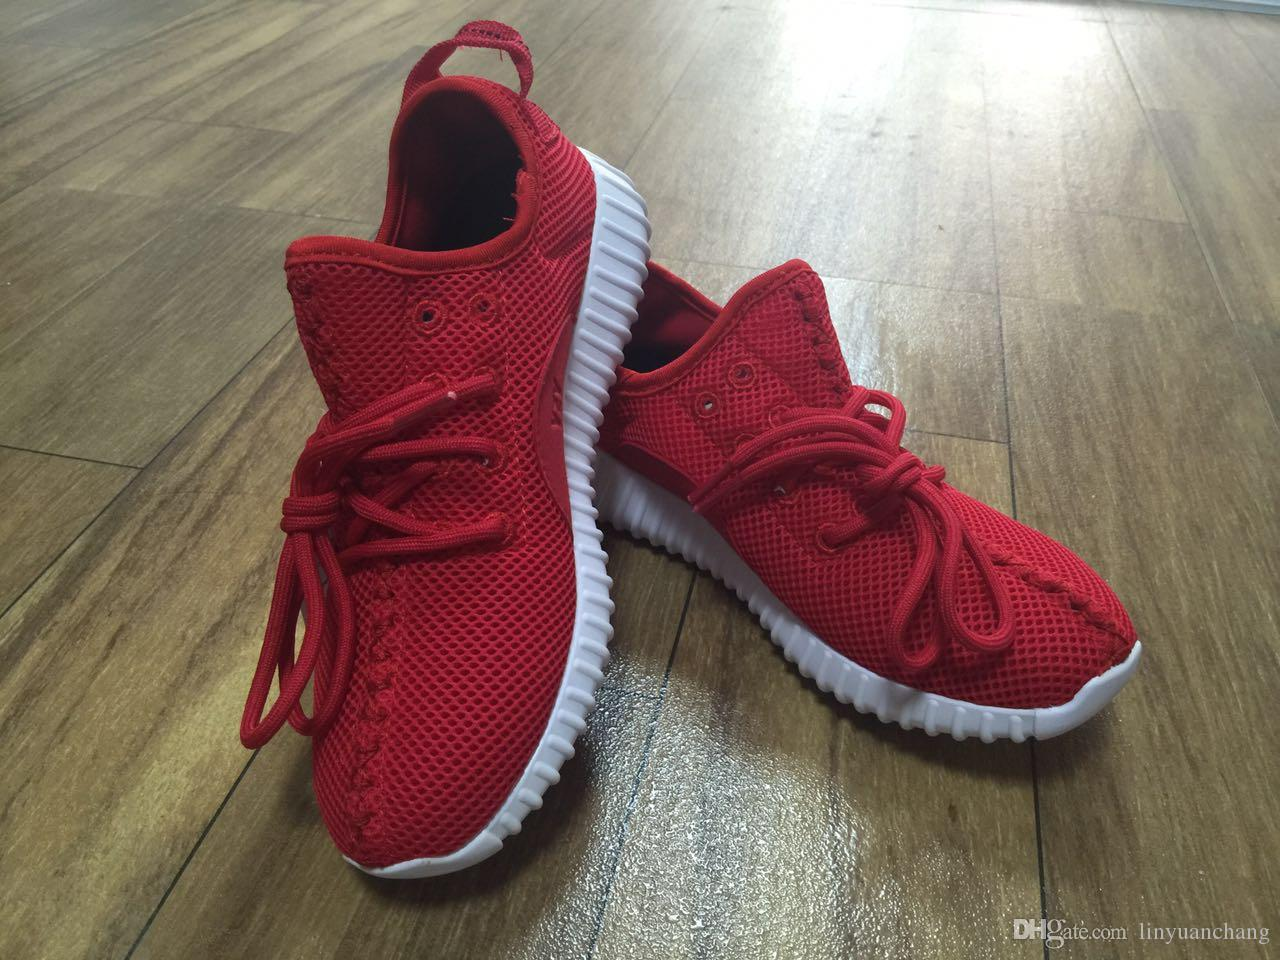 footlocker pictures online Professional wholesale 3 SPLY 350 V2 and box best men's shoes 350 v2 black red basketball shoes 36-46 manchester great sale online sale top quality dRnDr9